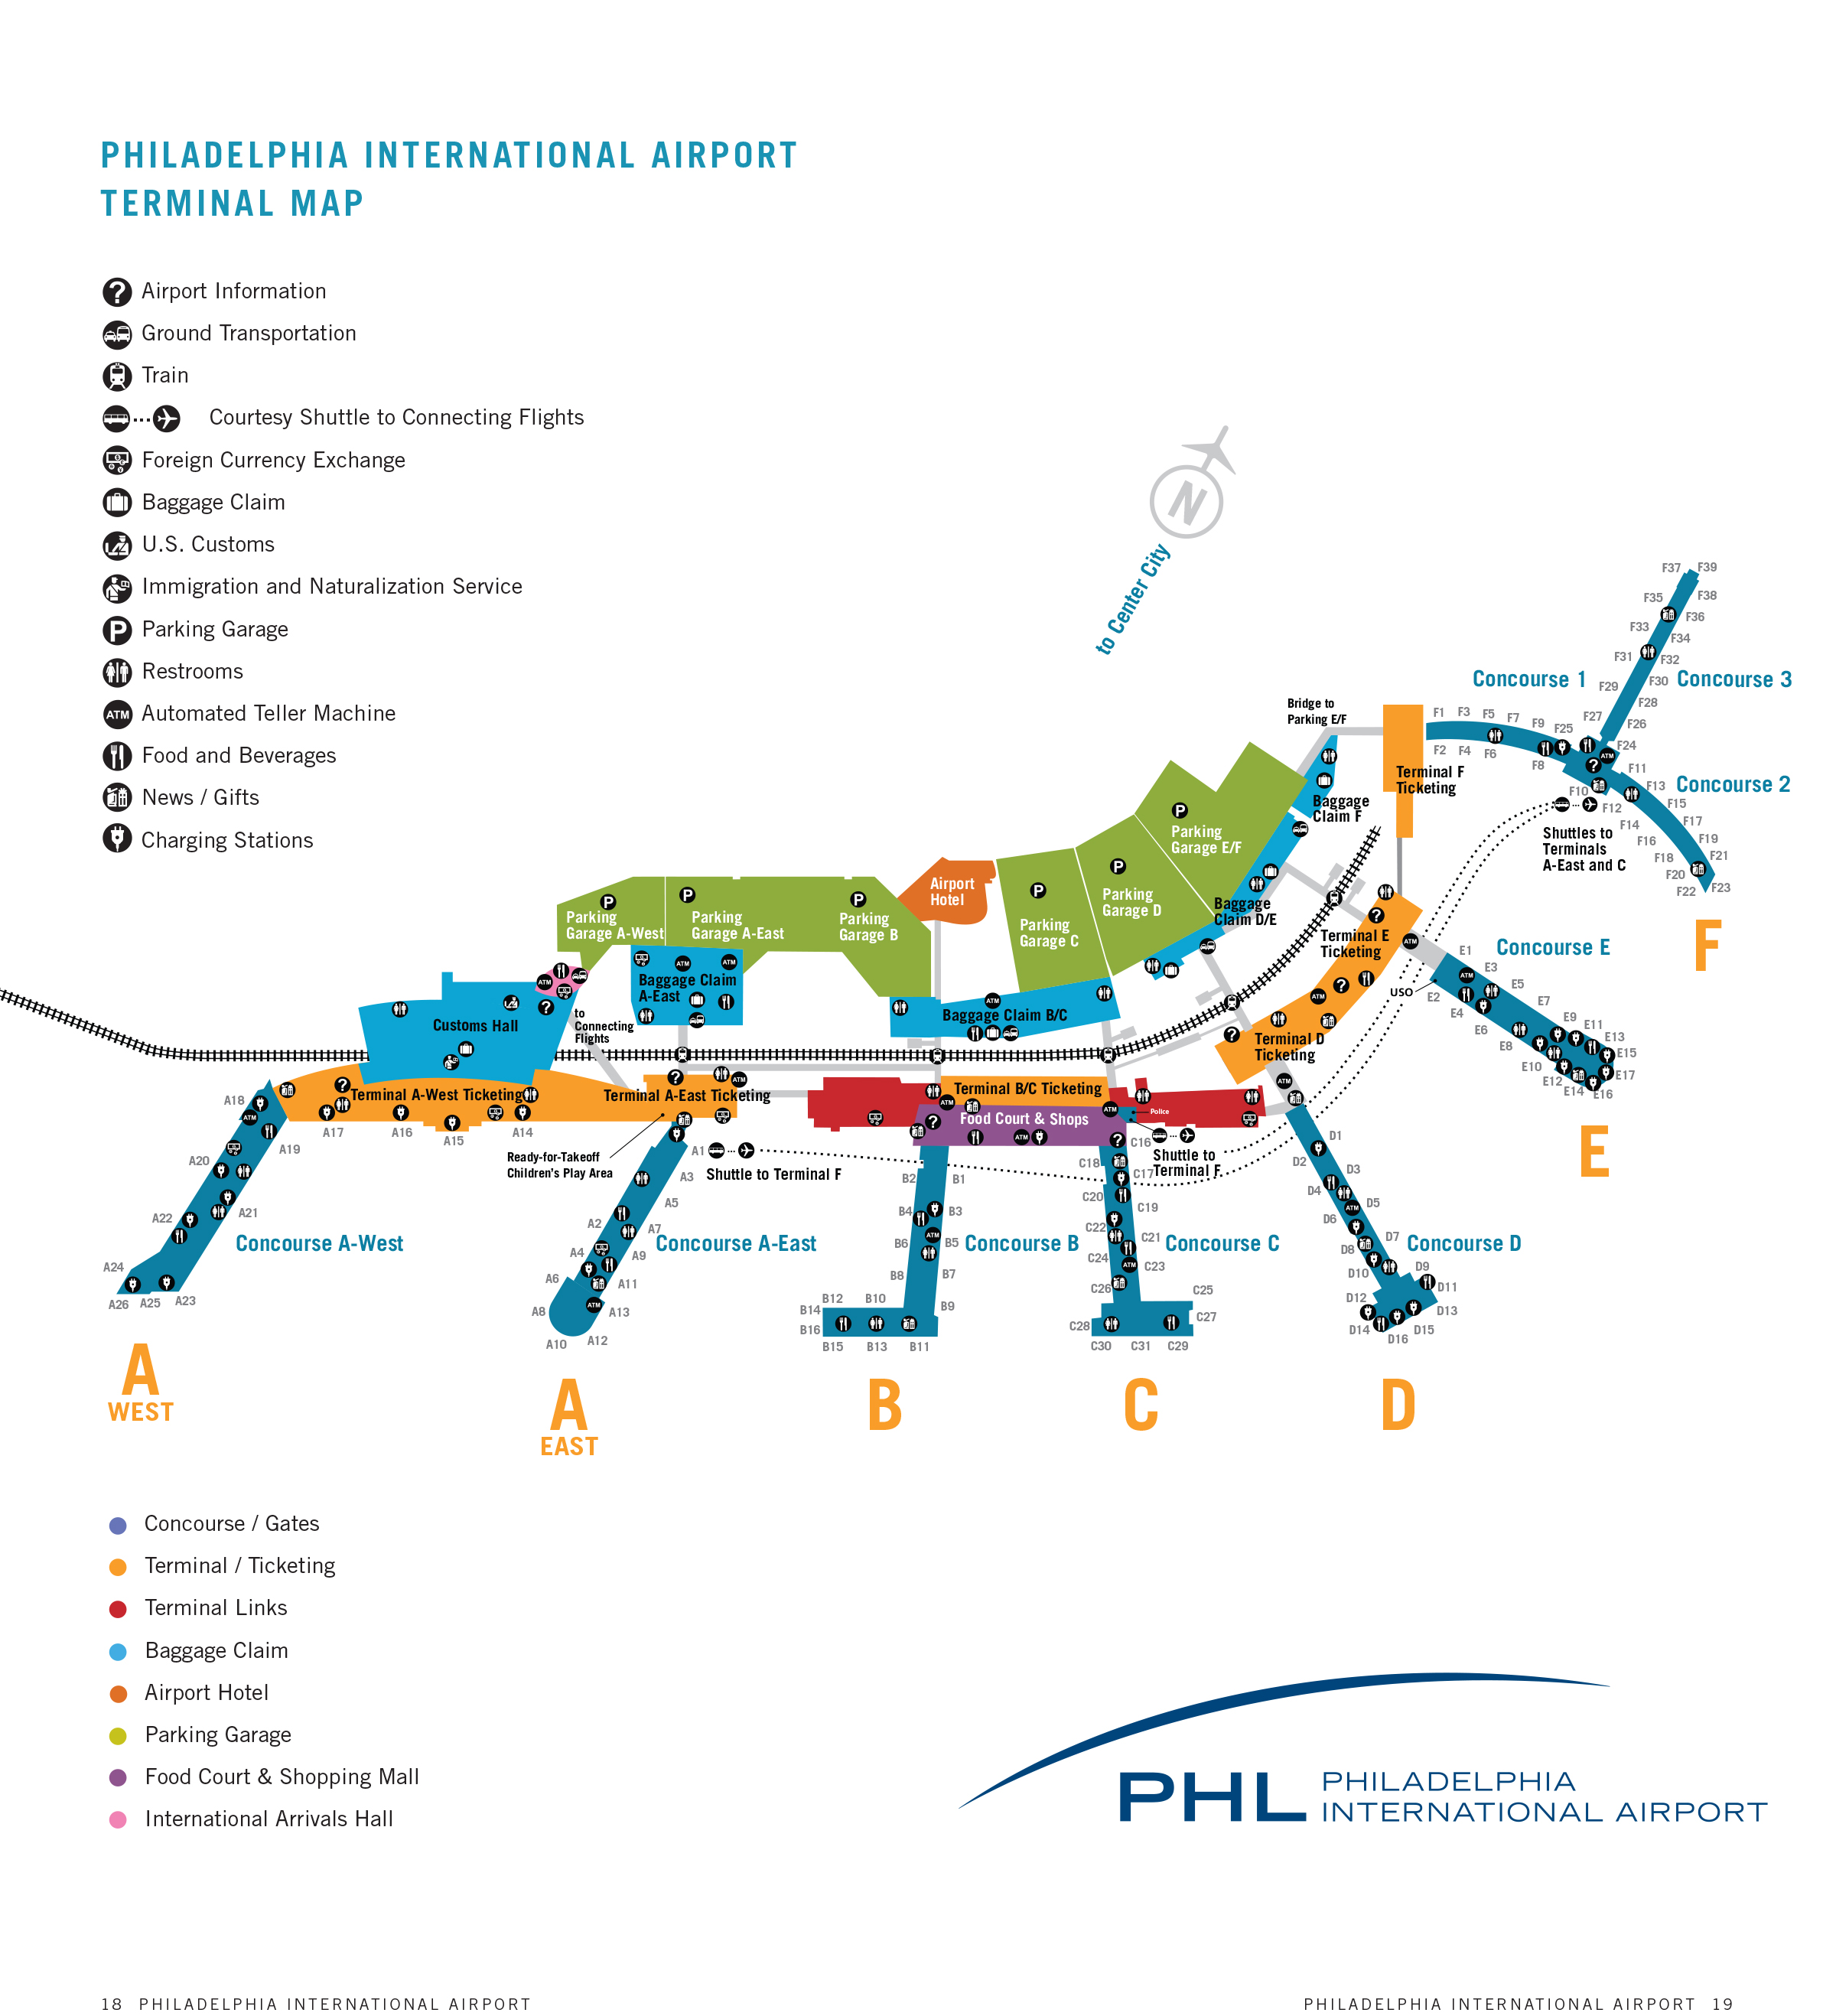 Philadelphia International Airport Map (PHL) - Printable ... on map of temple in philadelphia, map of bars in philadelphia, map of districts in philadelphia, map of colleges in philadelphia, map of towns in philadelphia, map of rivers in philadelphia, map of hospitals in philadelphia, map of airport in philadelphia, map of trains in philadelphia, map of cities in philadelphia, map of museums in philadelphia,